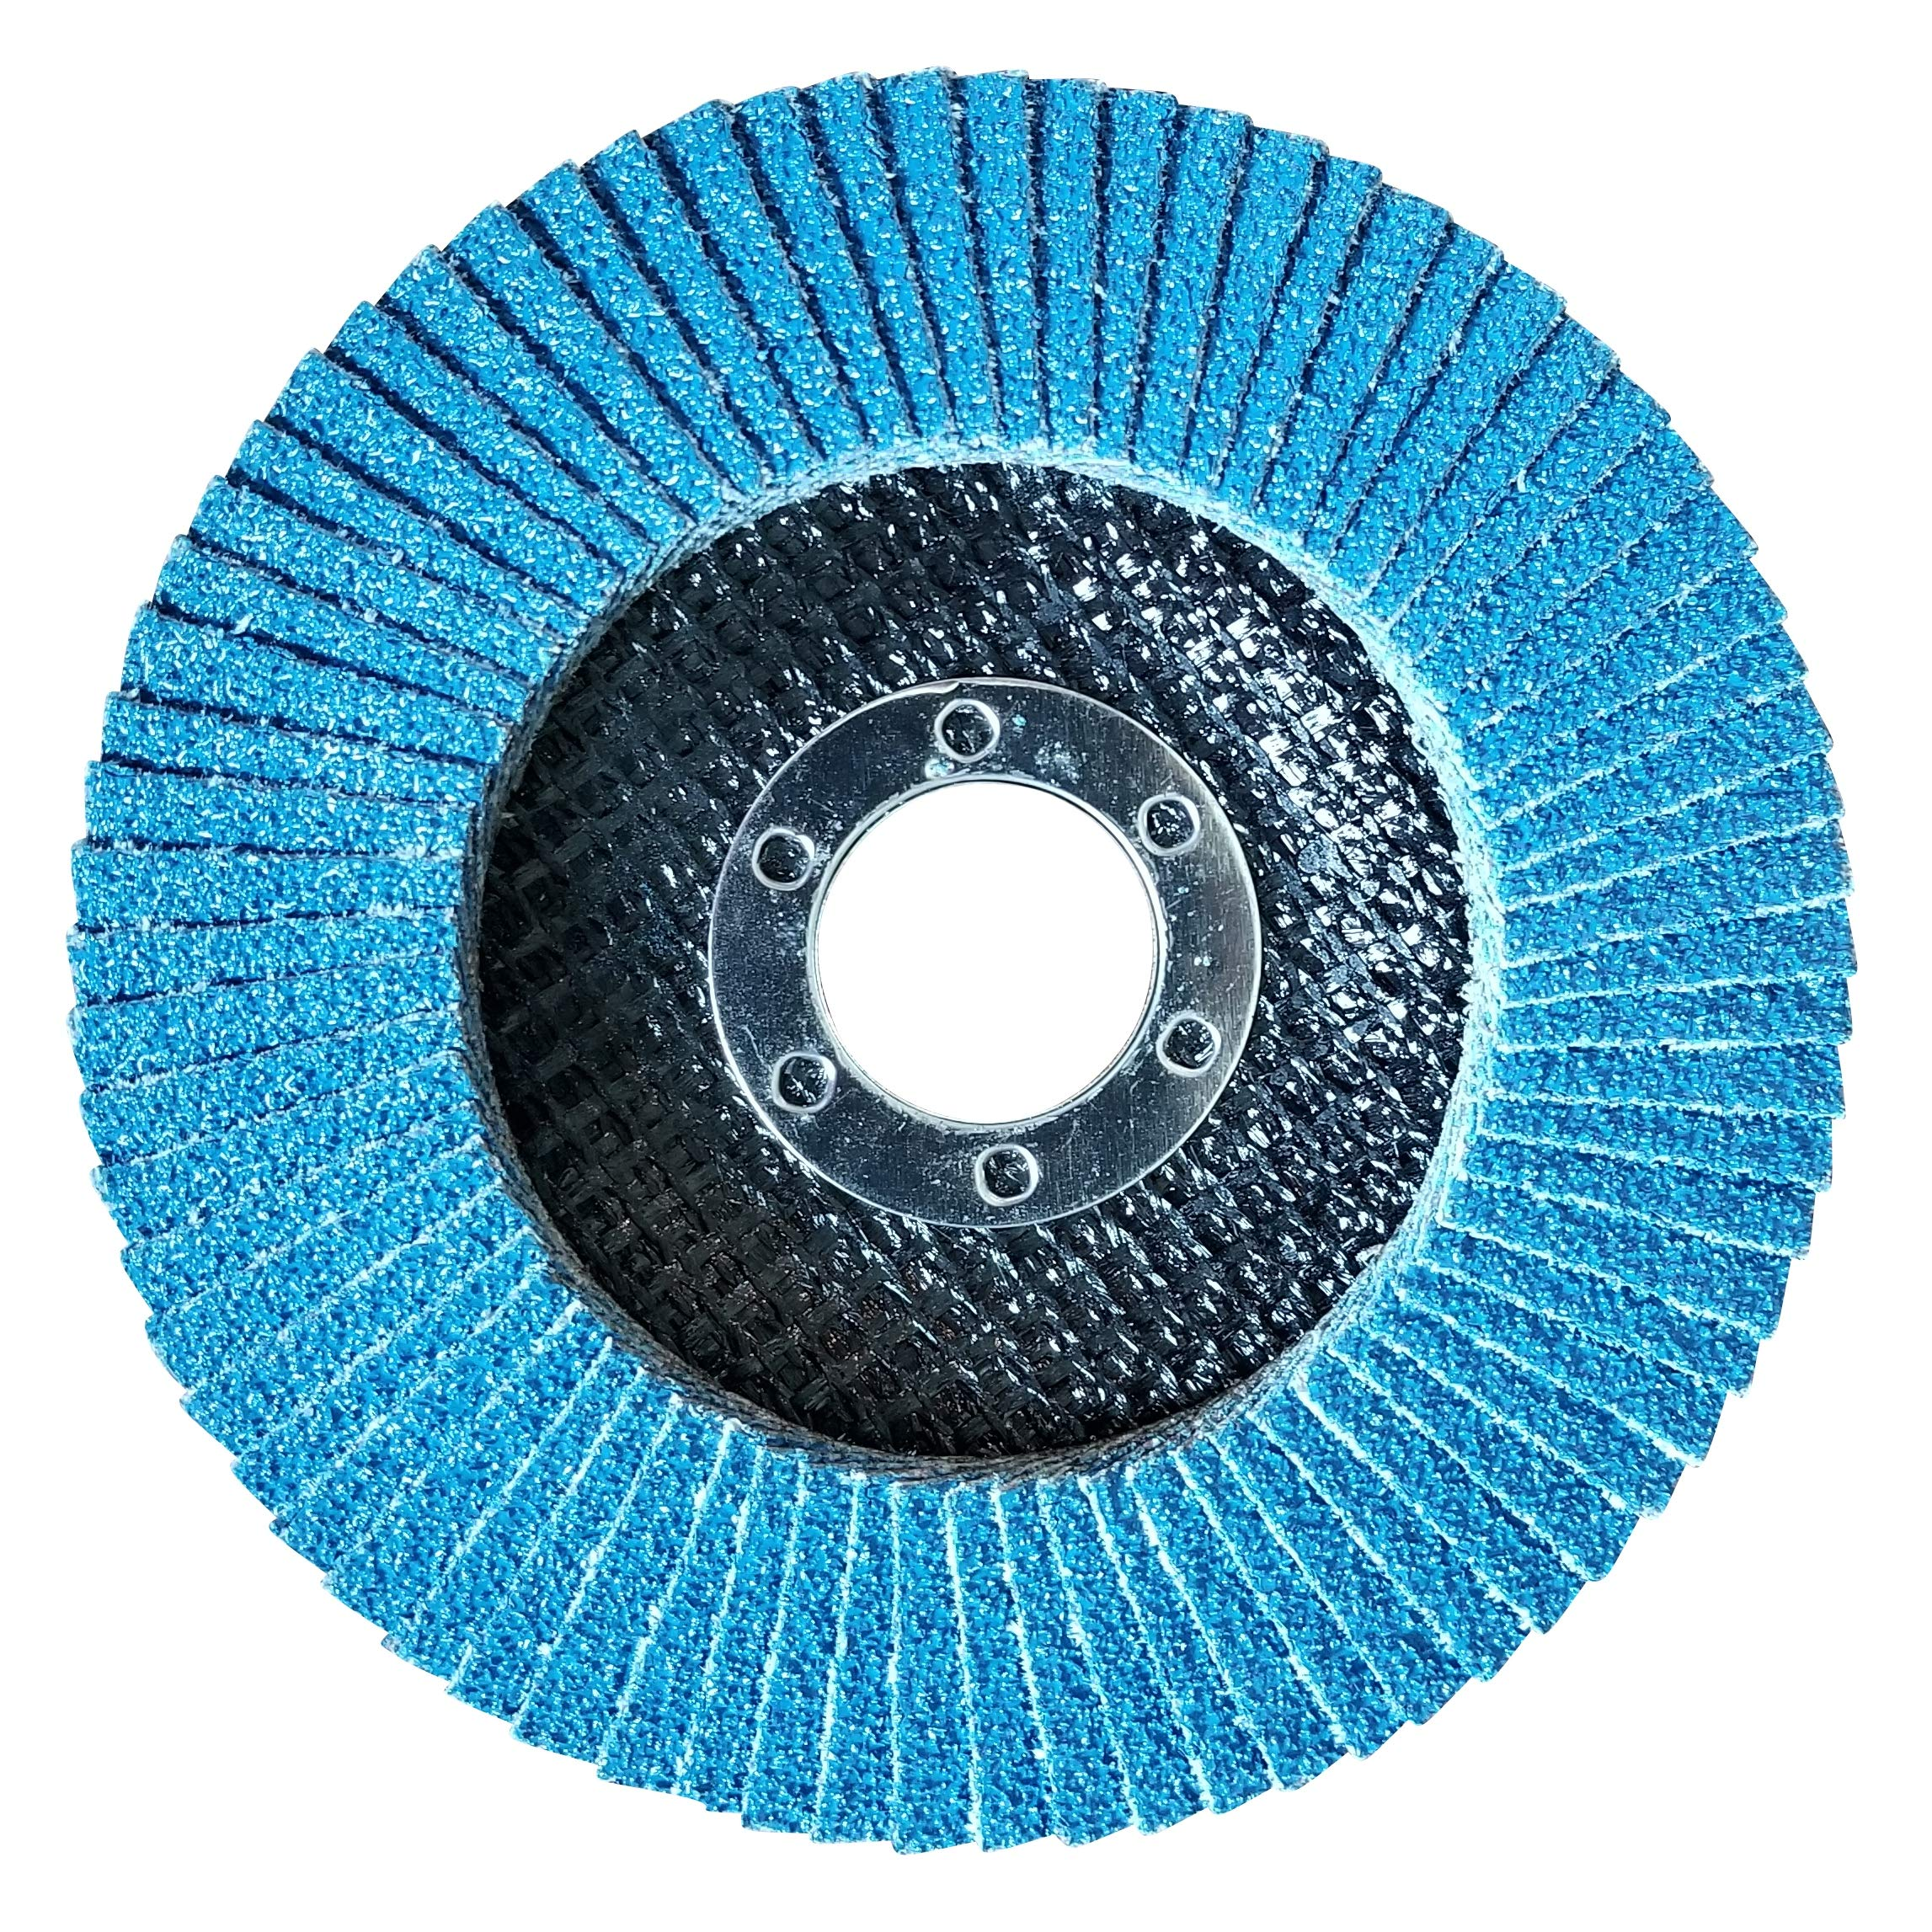 100 Pack Flap Discs 40 Grit 4.5'' x 7/8'' Sanding Wheels by Lincoln Abrasives (Image #3)